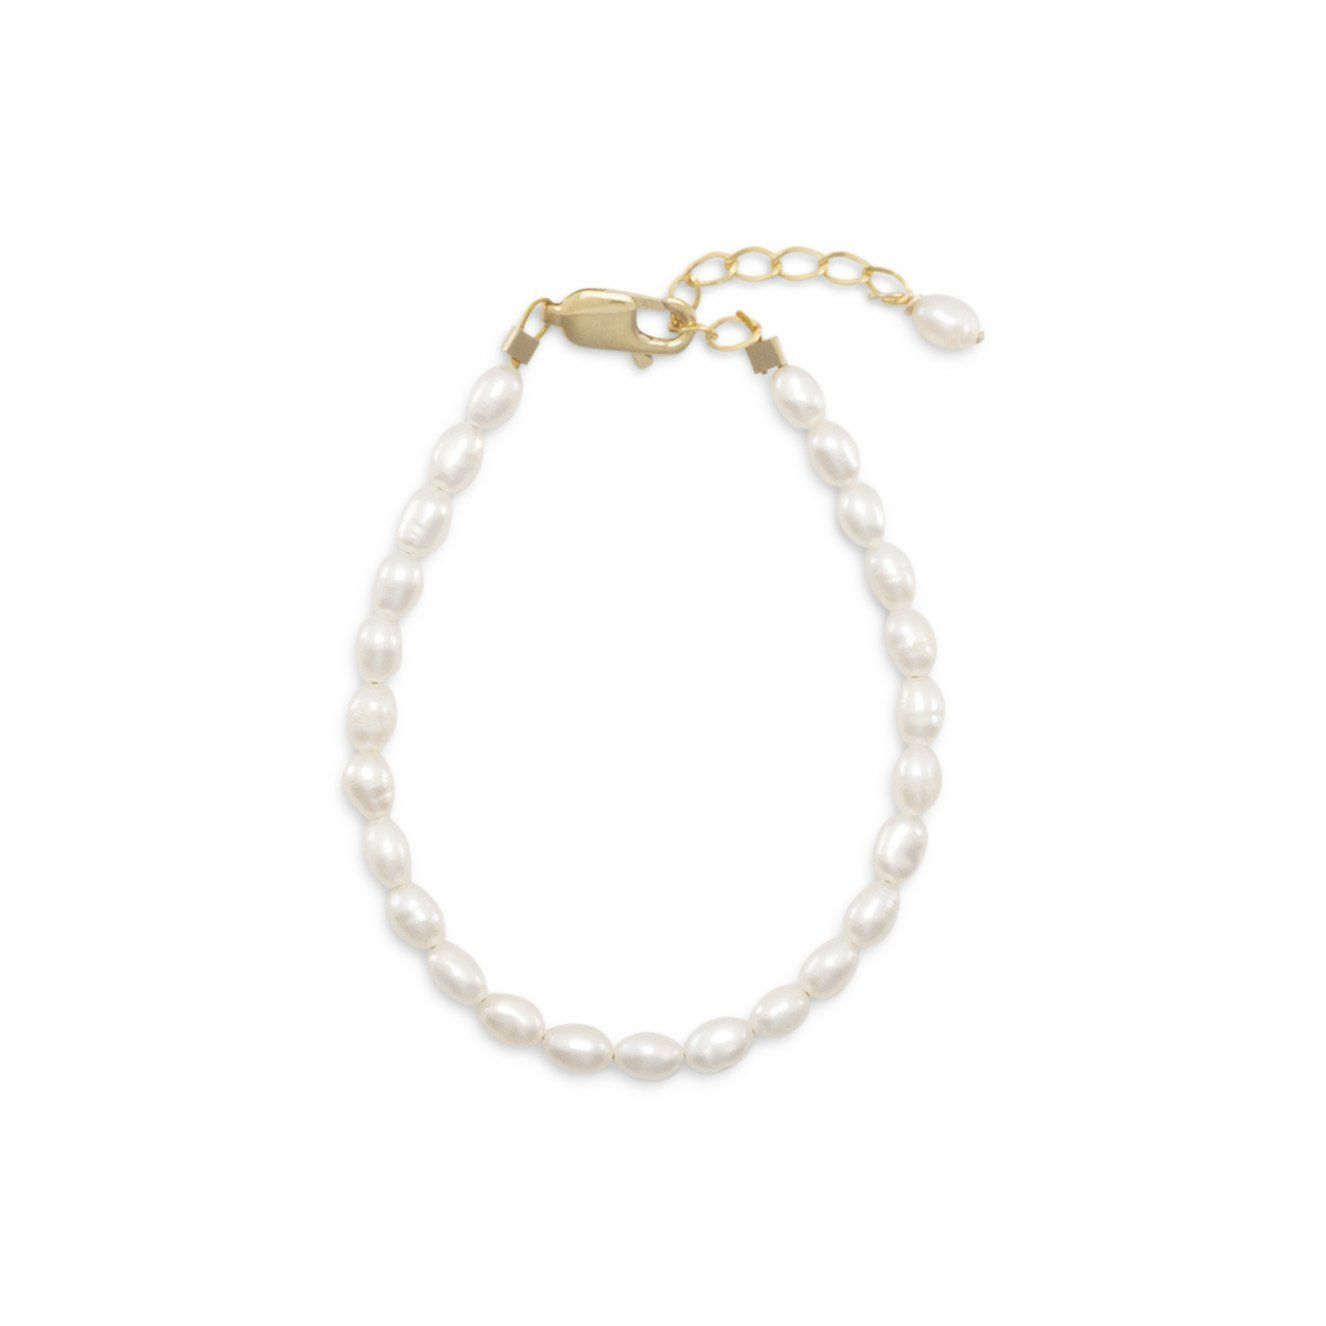 Gold filled cultured freshwater rice pearl bracelet pearl bracelet